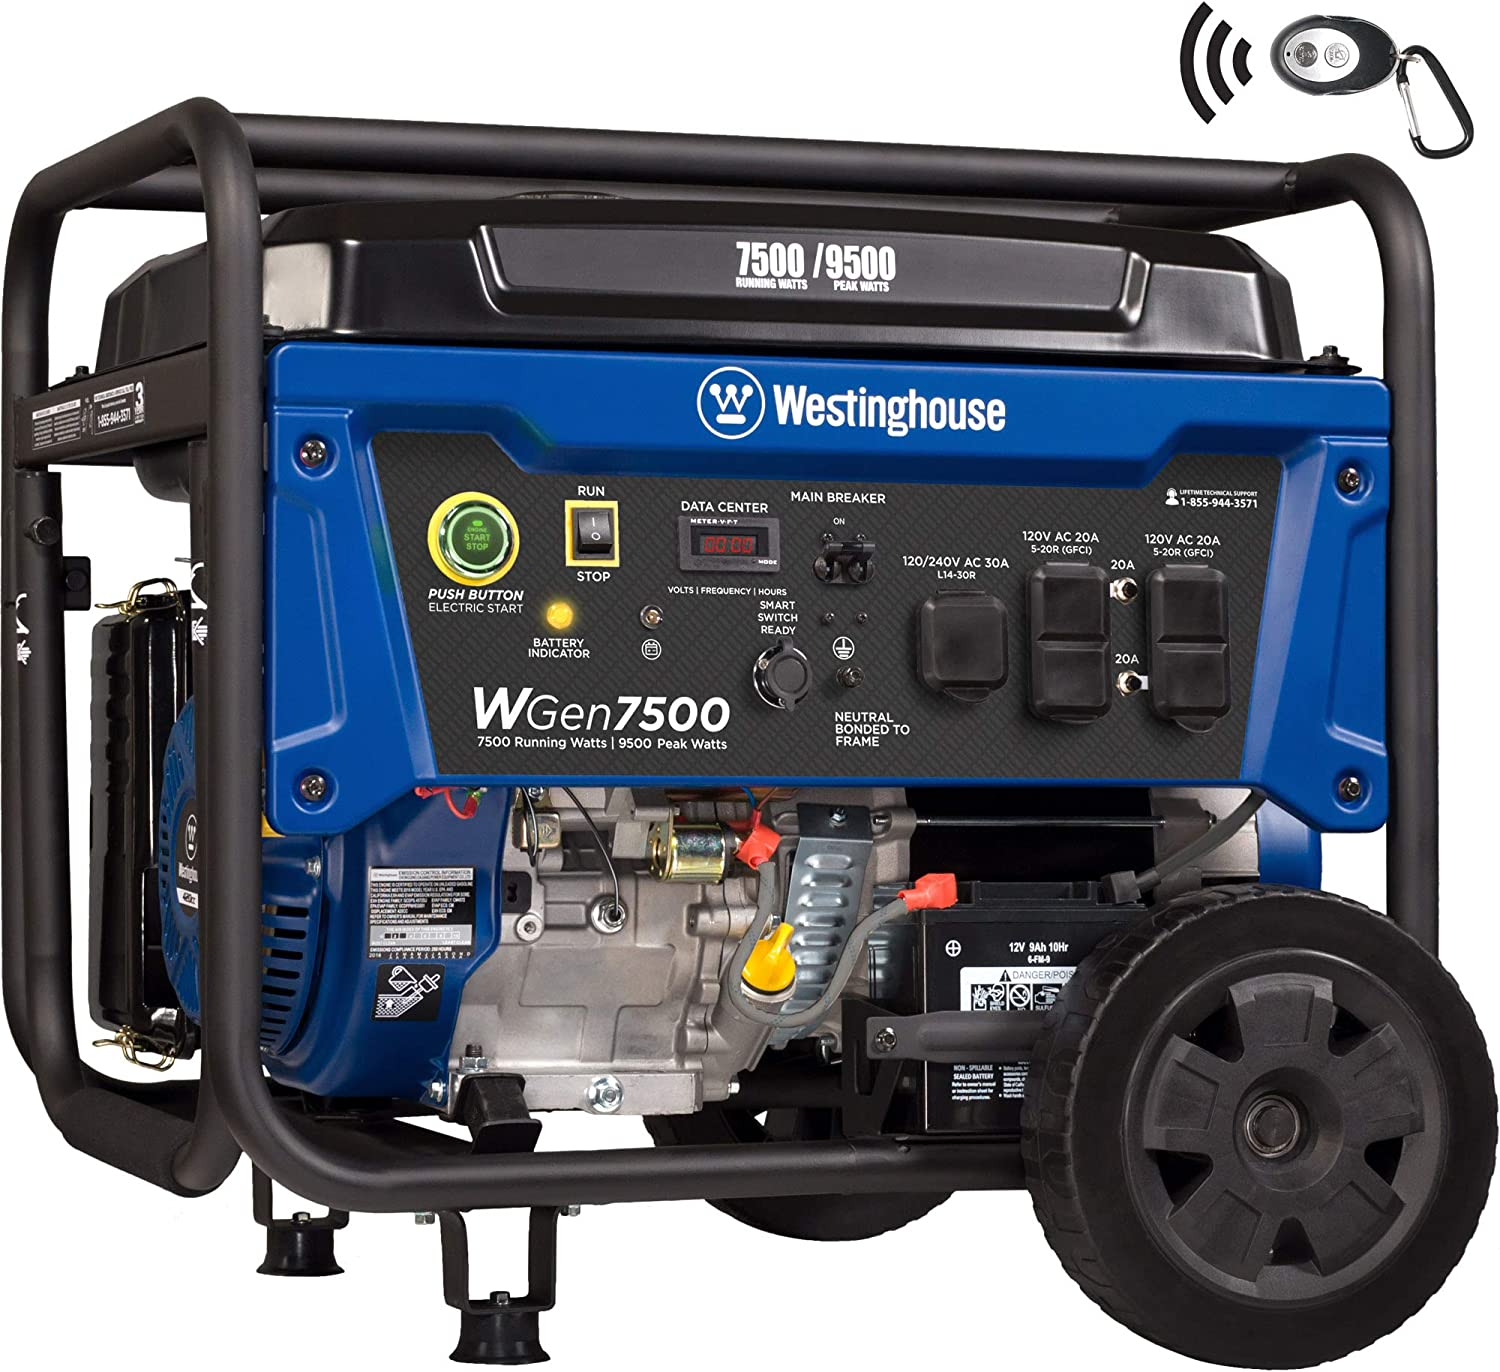 Westinghouse WGen7500 Portable Generator with Remote Electric Start – 7500 Rated Watts 9500 Peak Watts – Gas Powered – CARB Compliant – Transfer Switch Ready